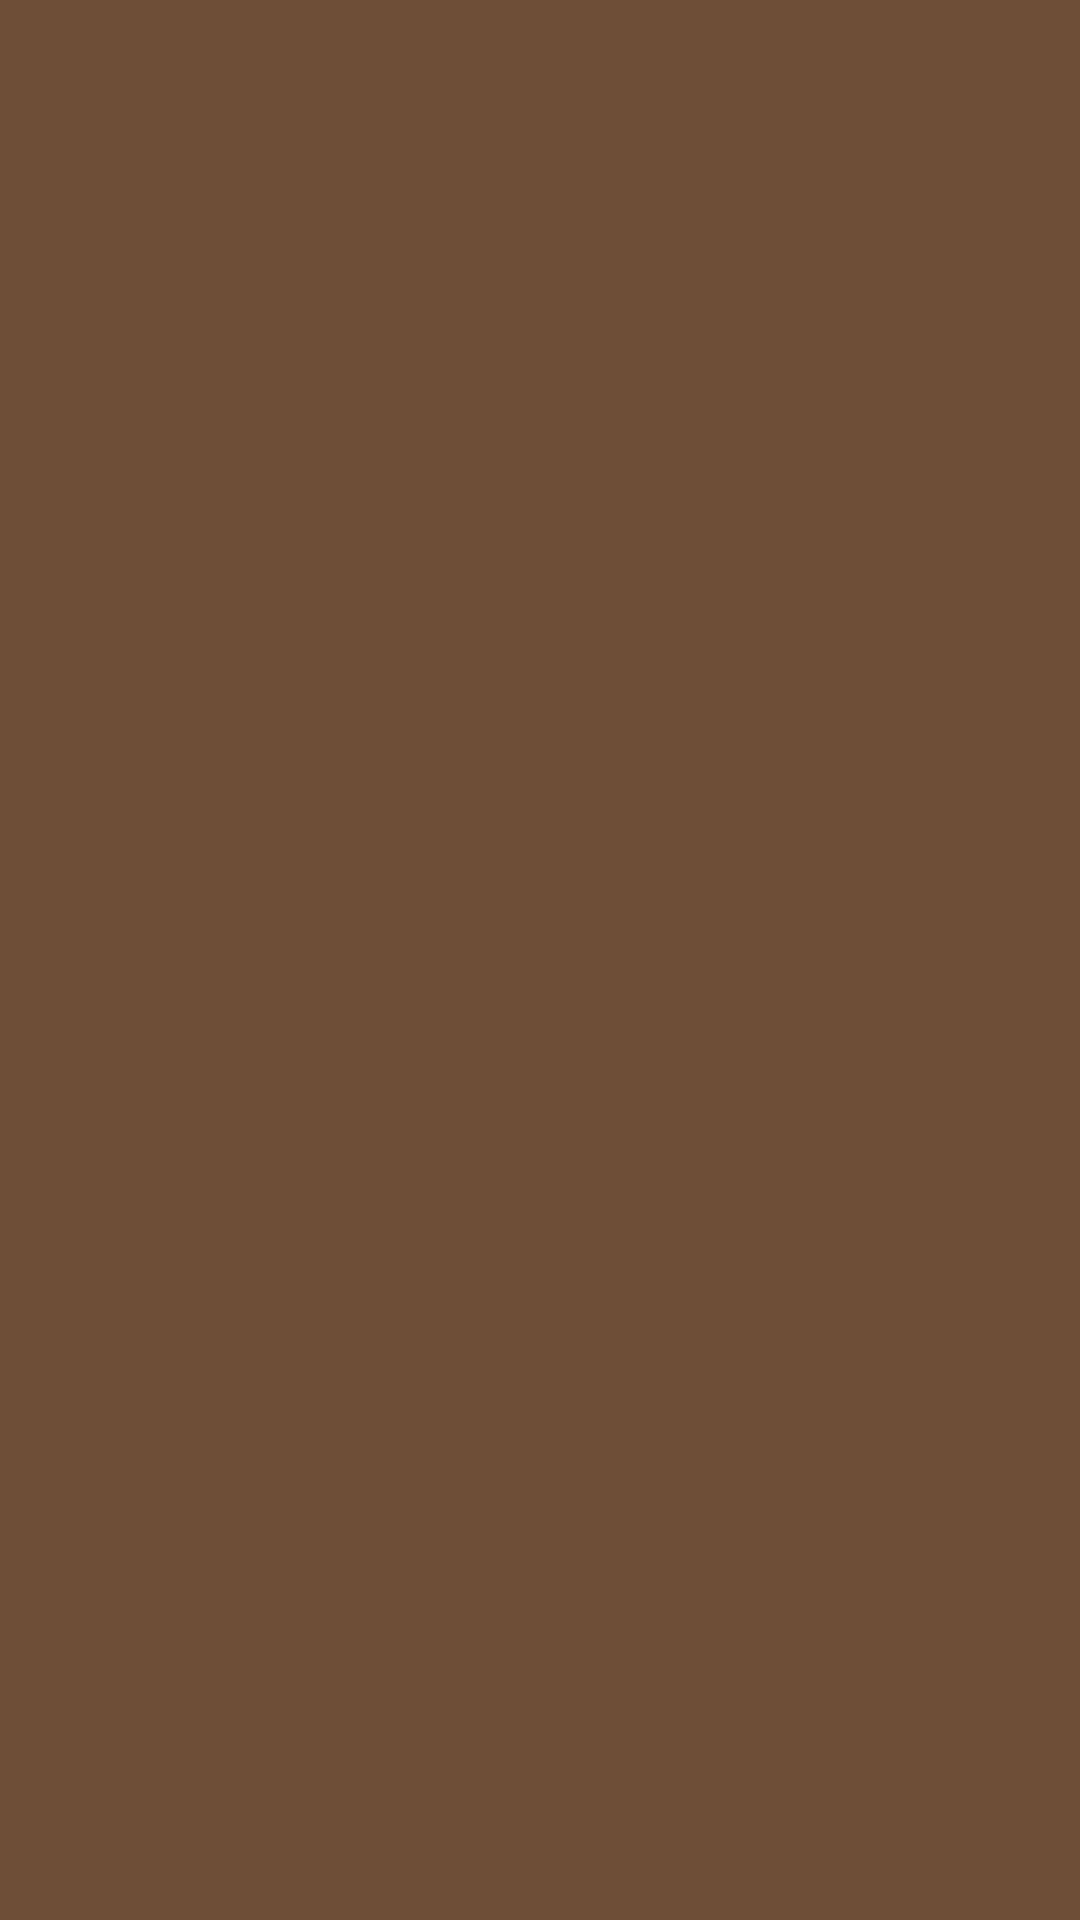 1080x1920 Coffee Solid Color Background